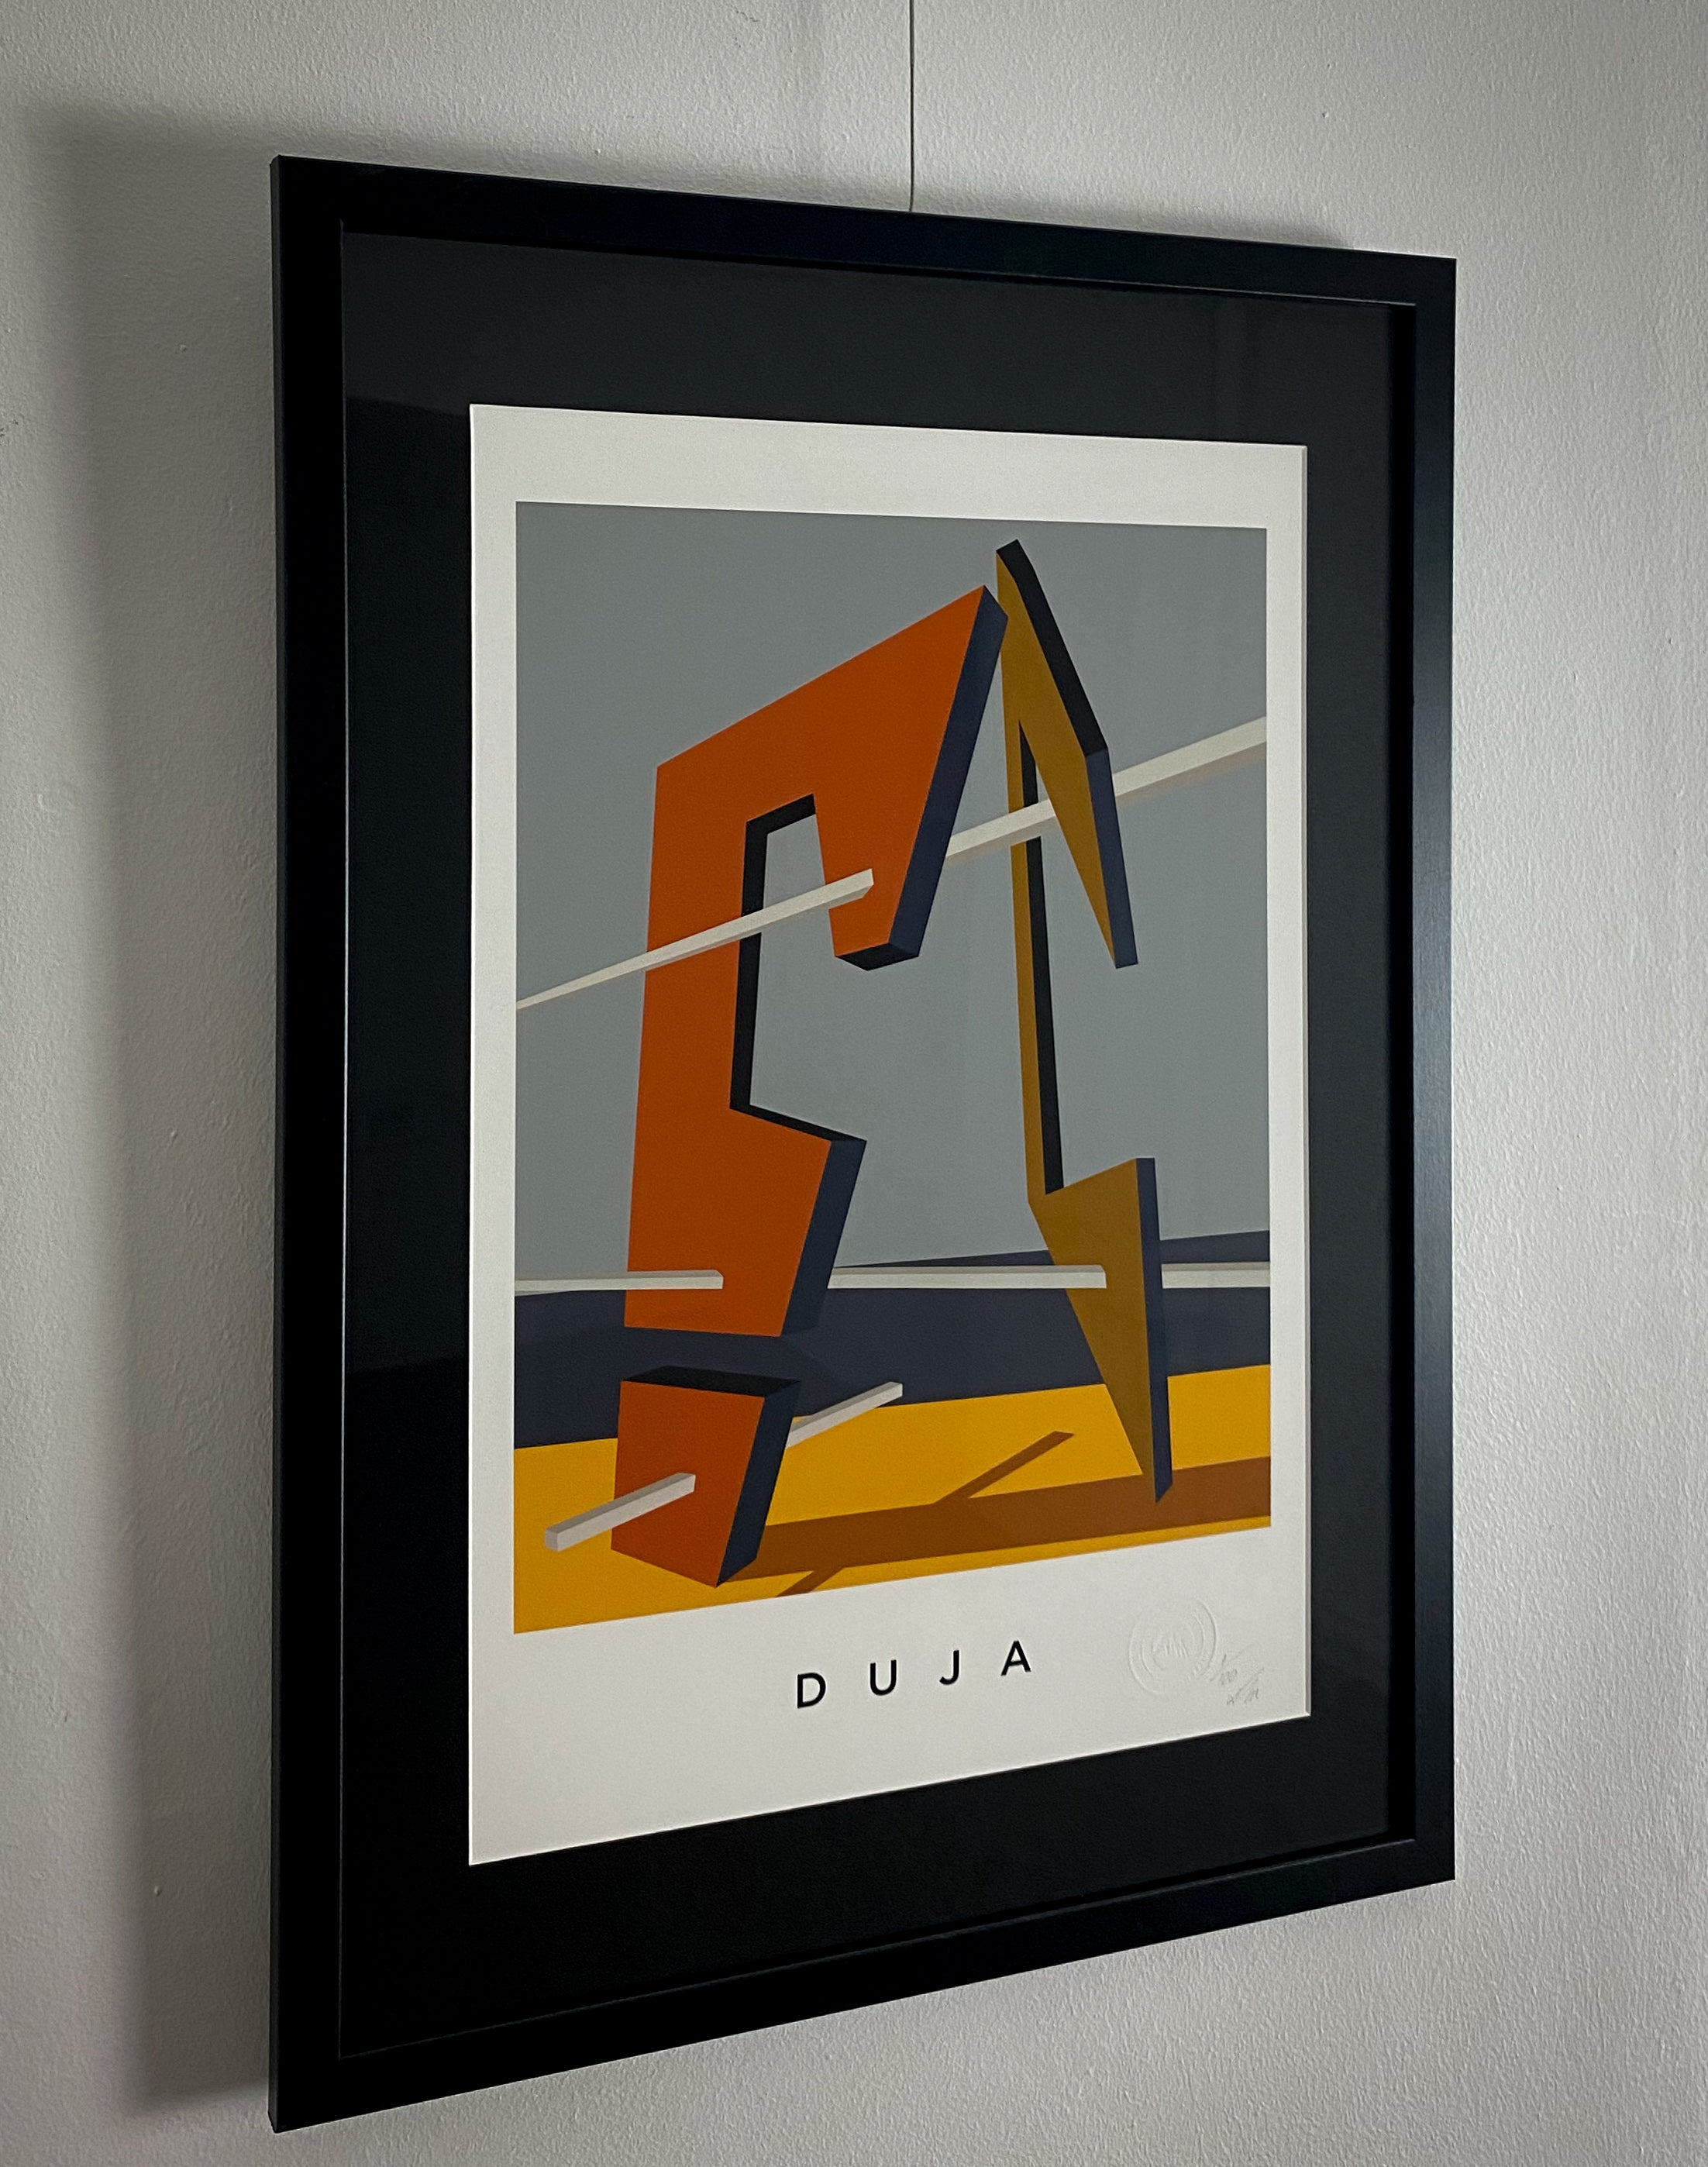 DUJA.  A2 Framed, Limited Edition Giclee Print